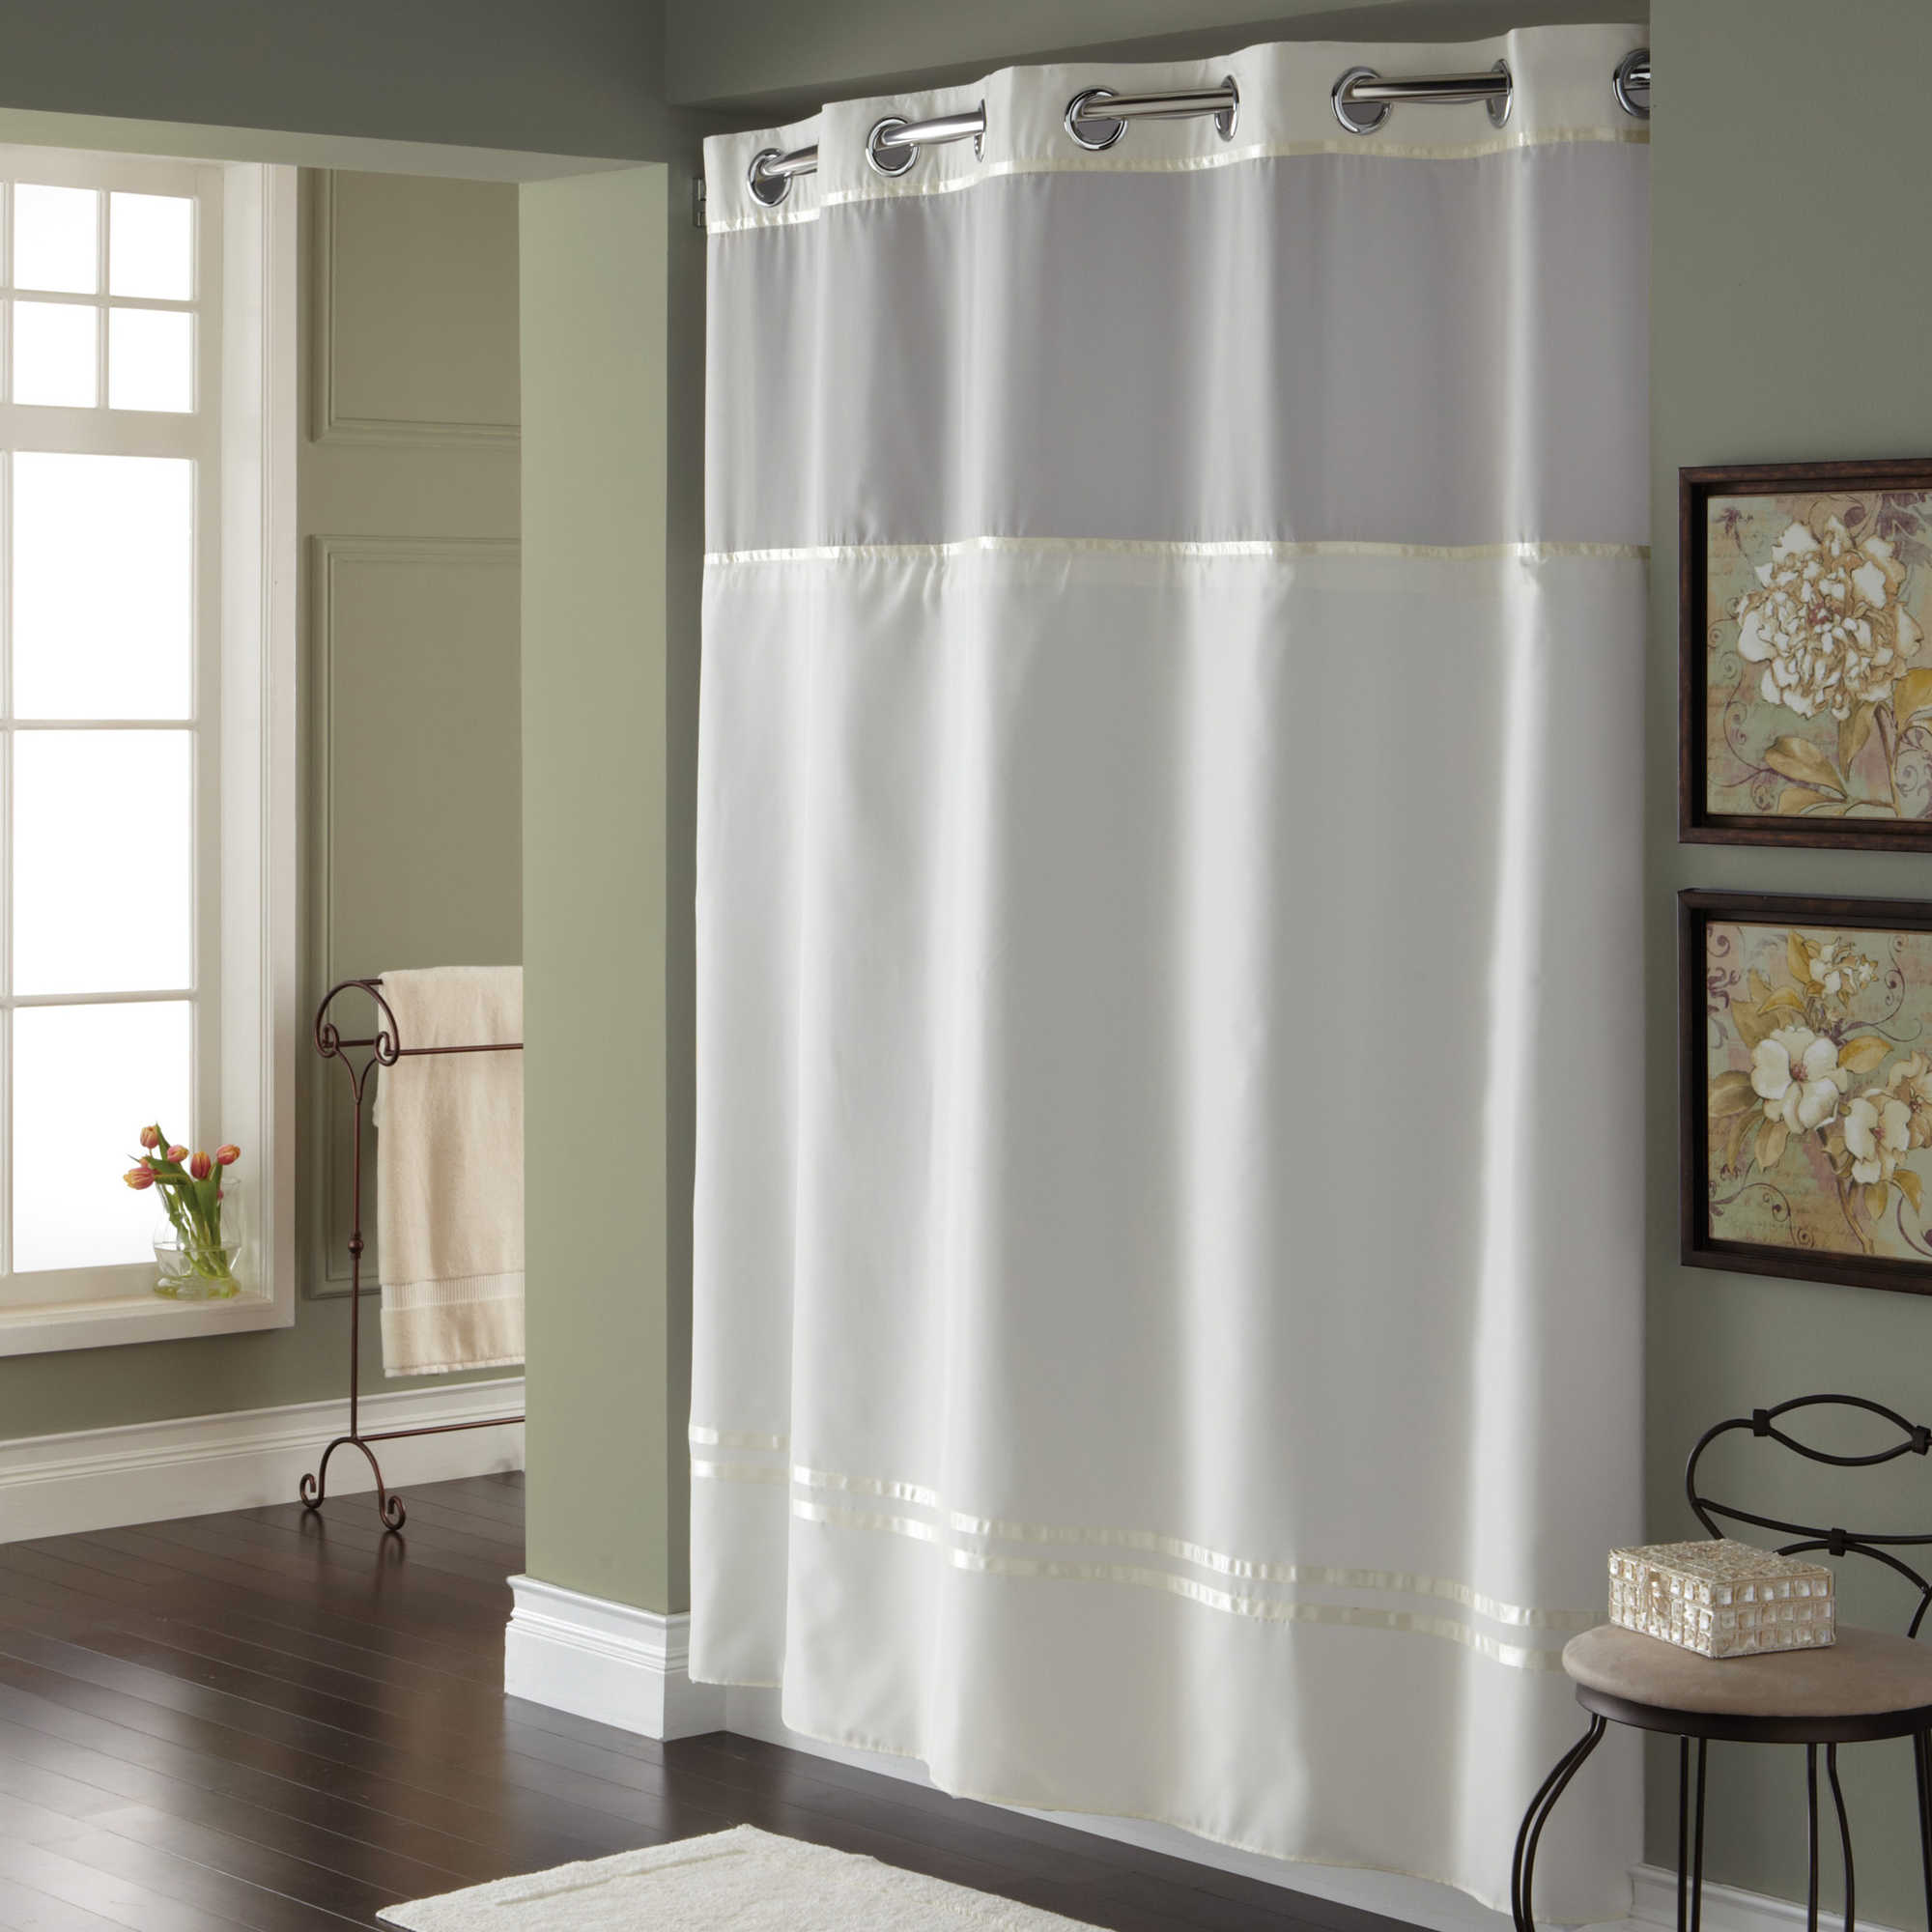 Details About HooklessR Escape 71 Inch X 74 Fabric Shower Curtain And Line